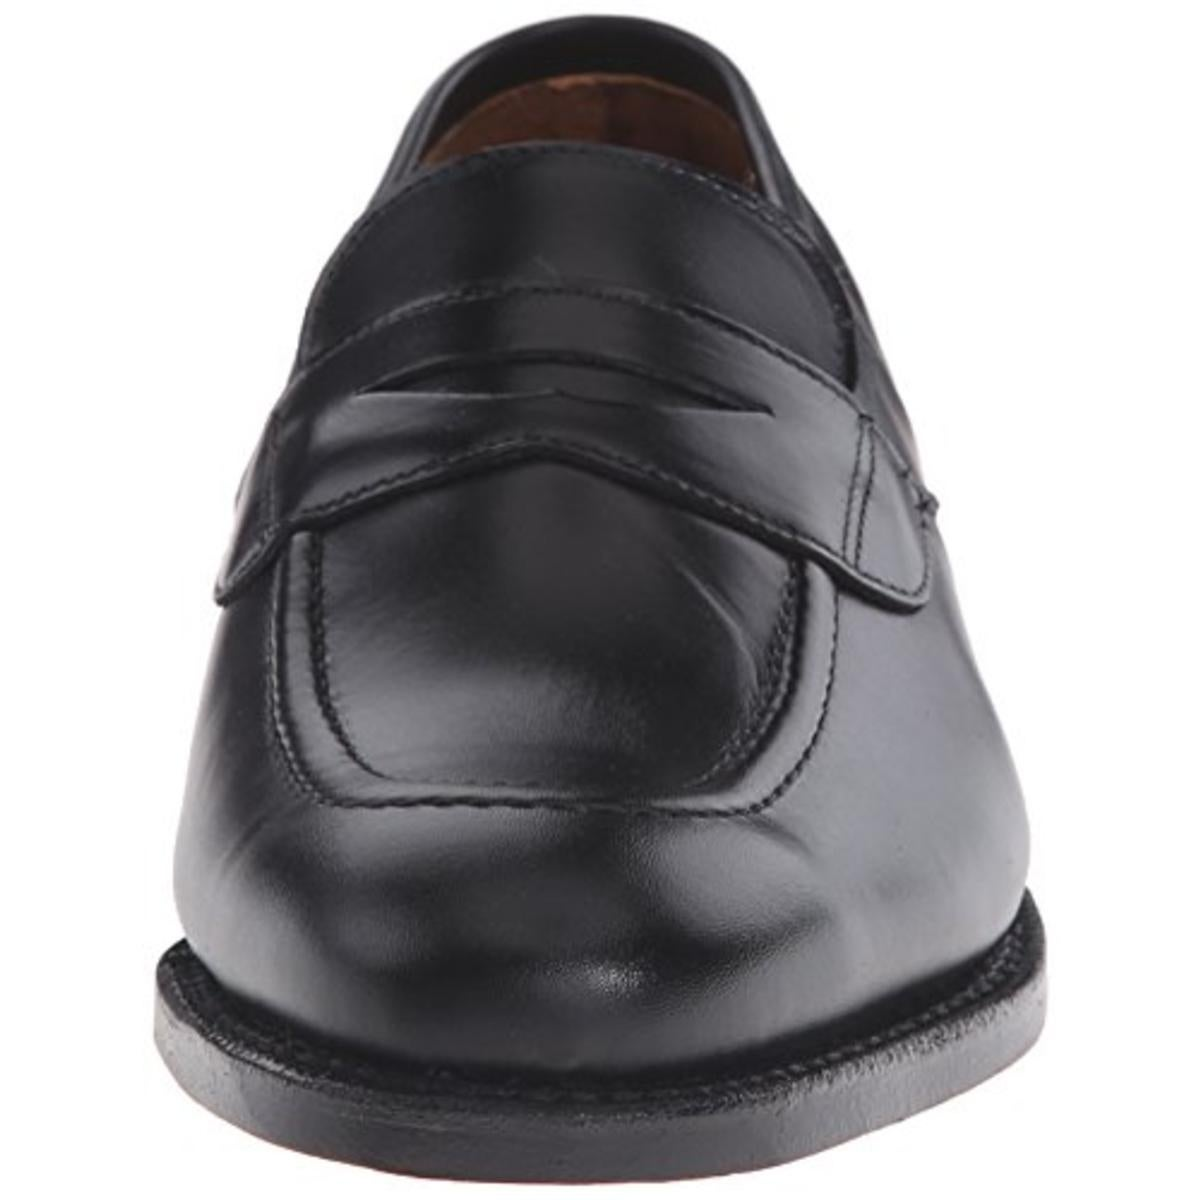 2265df638cd Shop Allen Edmonds Mens Lake Forest Penny Loafers Leather Slip On - 10  extra wide (e+